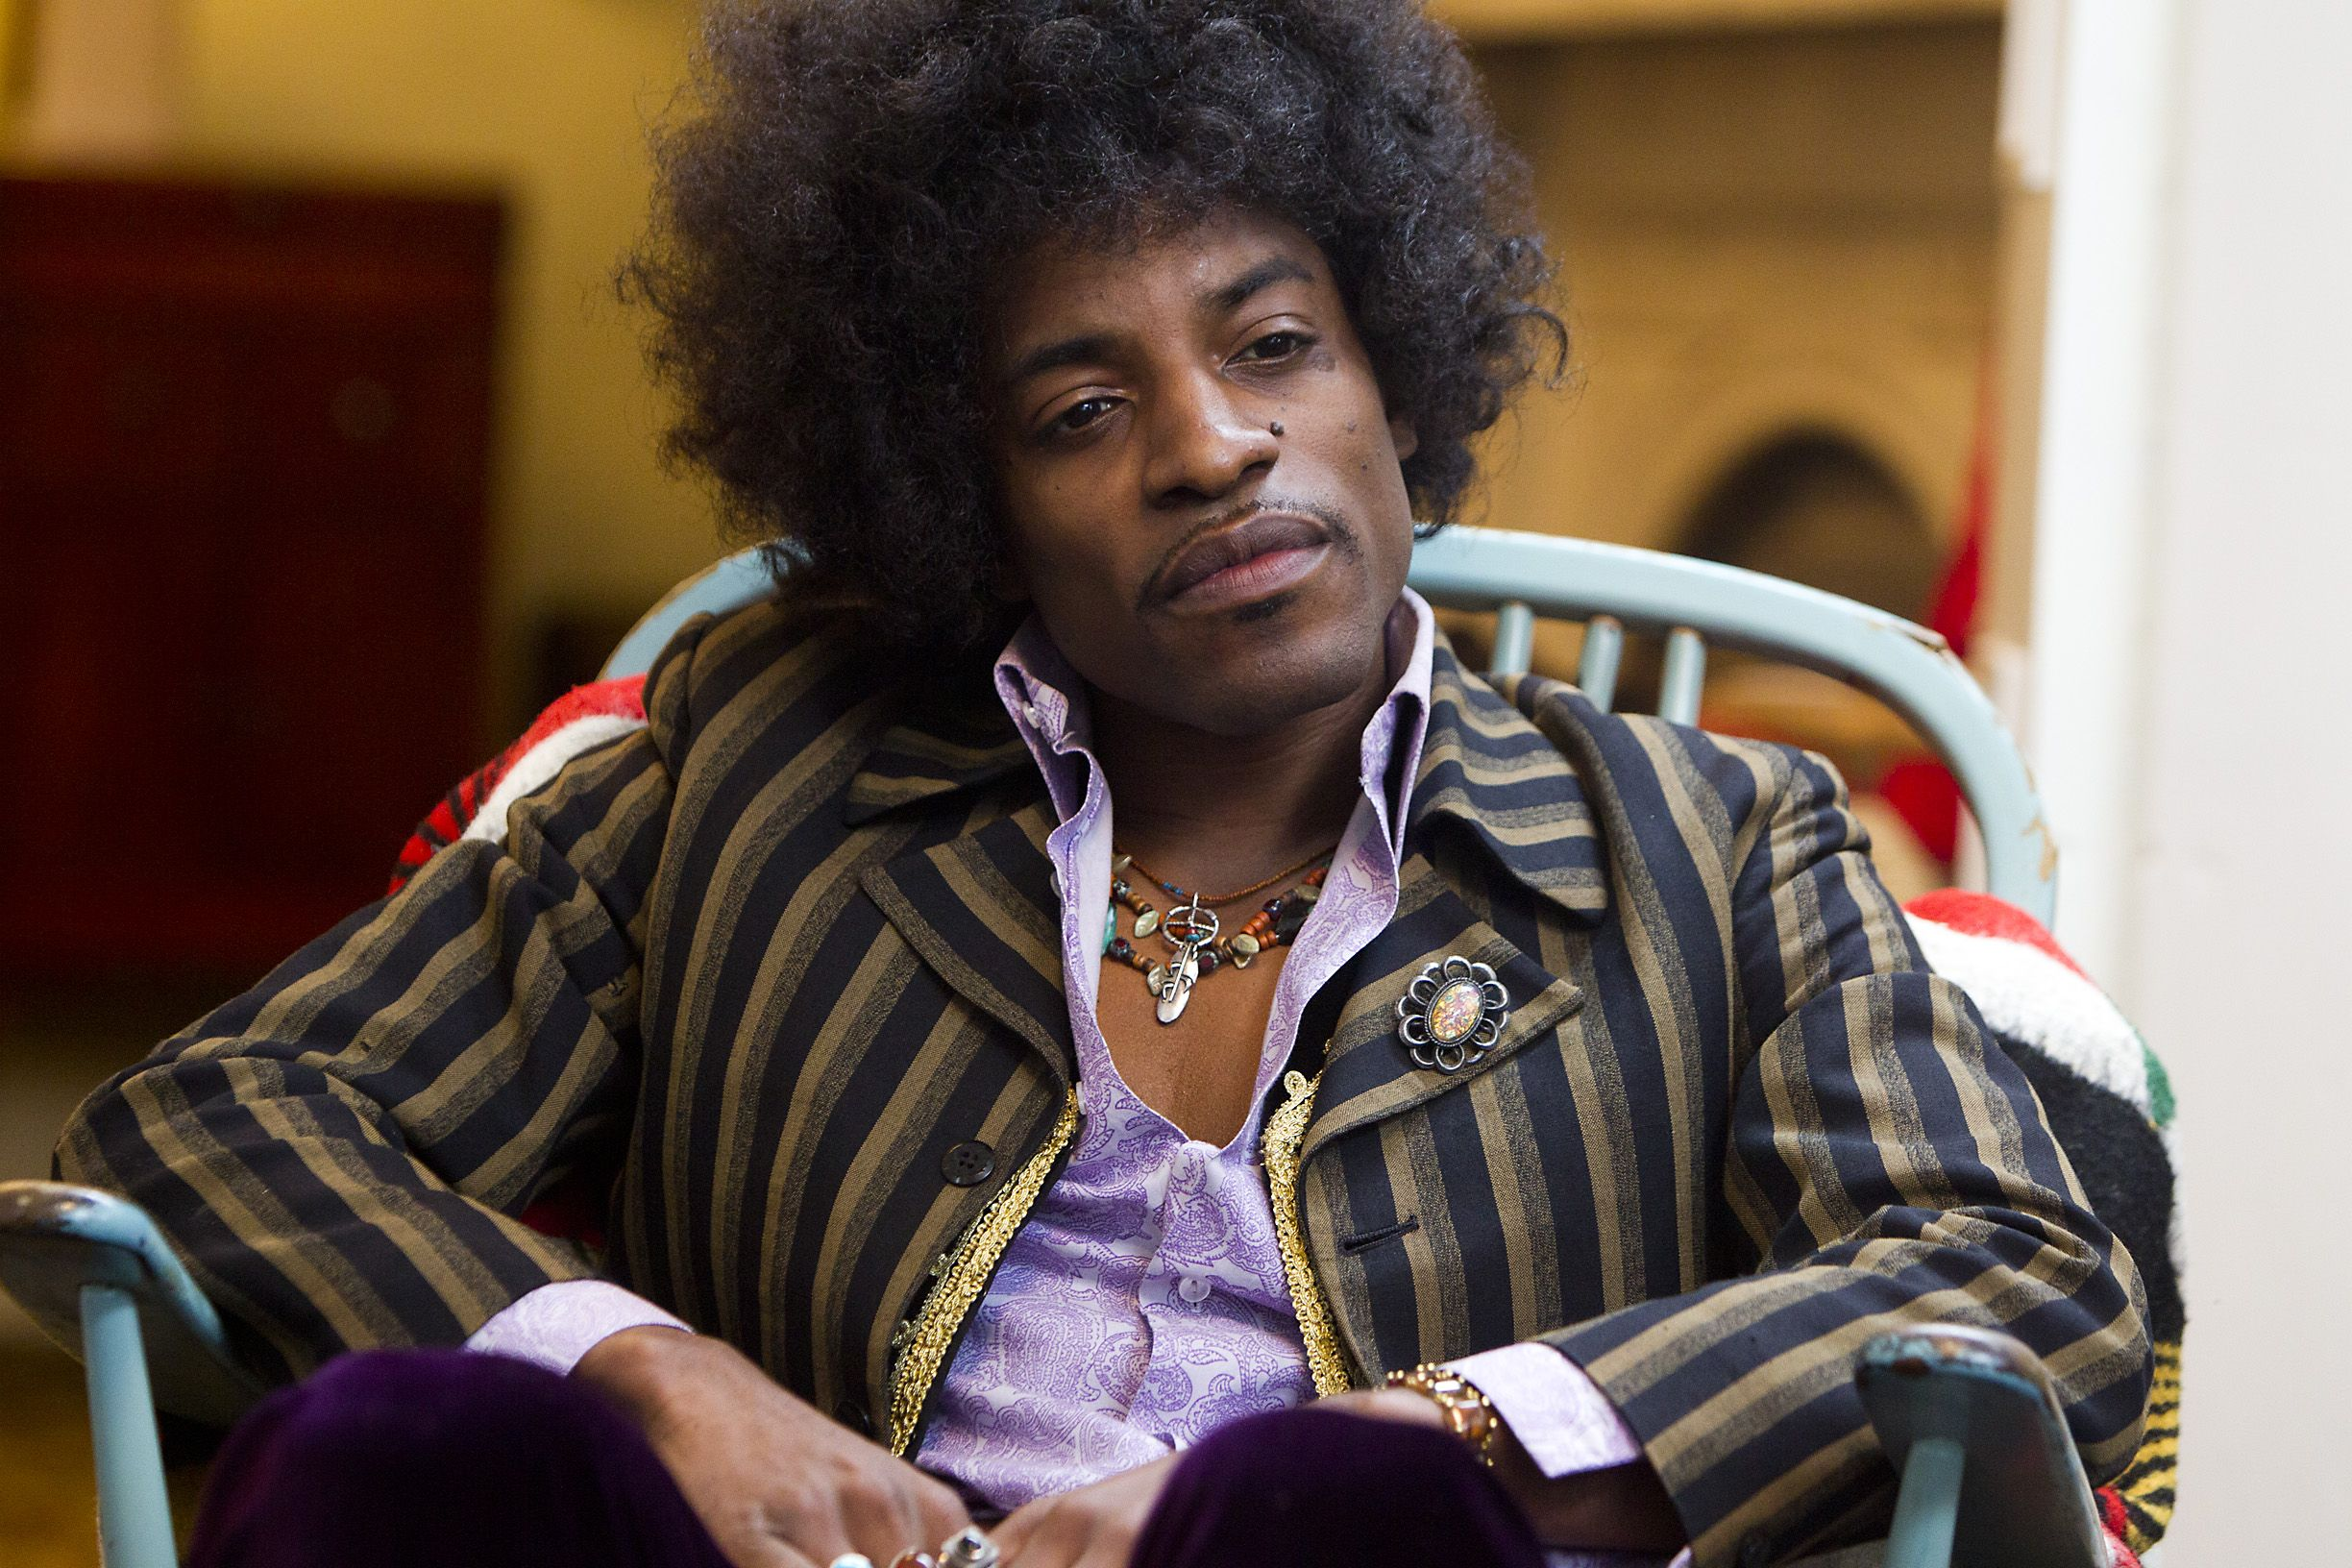 """André Benjamin as Jimi Hendrix in the biopic """"JIMI: ALL IS BY MY SIDE,"""" an XLrator Media release."""